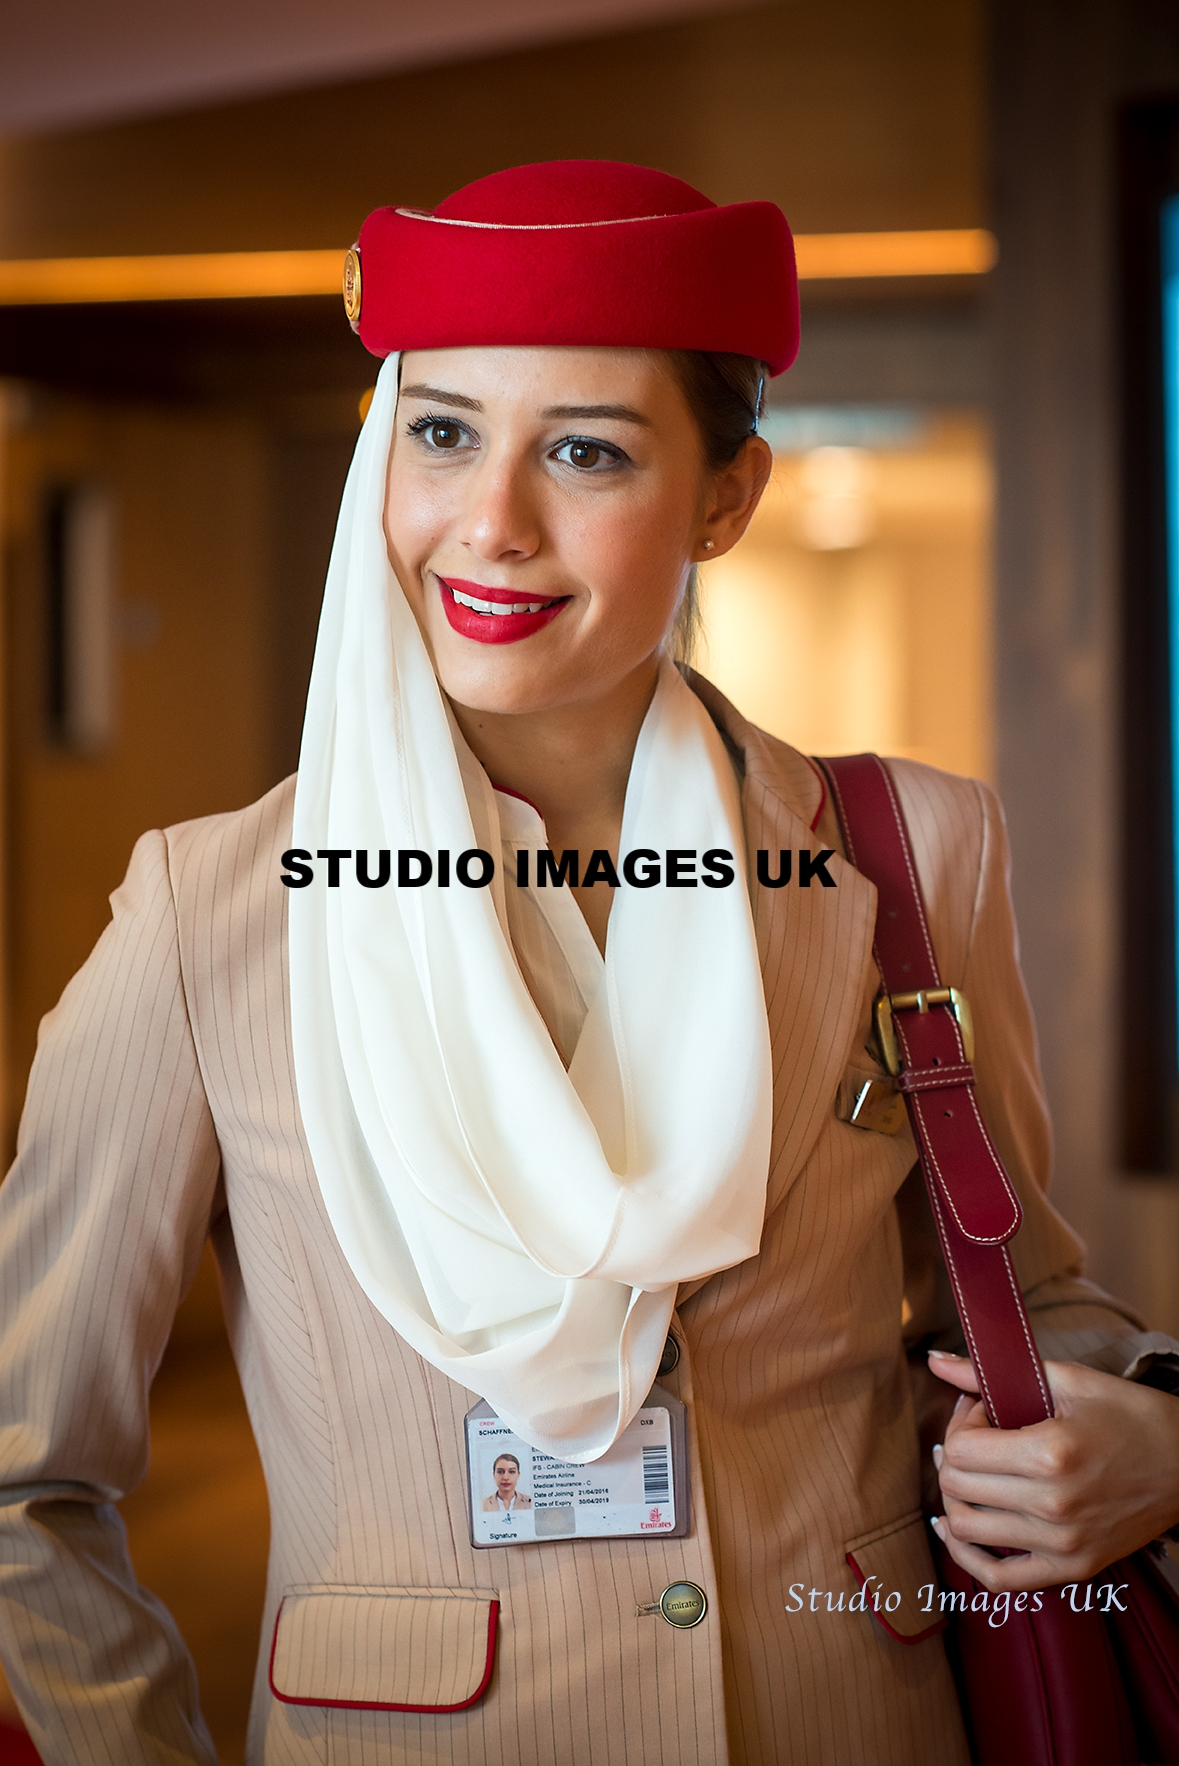 We offer a full CV review and photo review service for all Emirates cabin crew wannabes. High success rates!